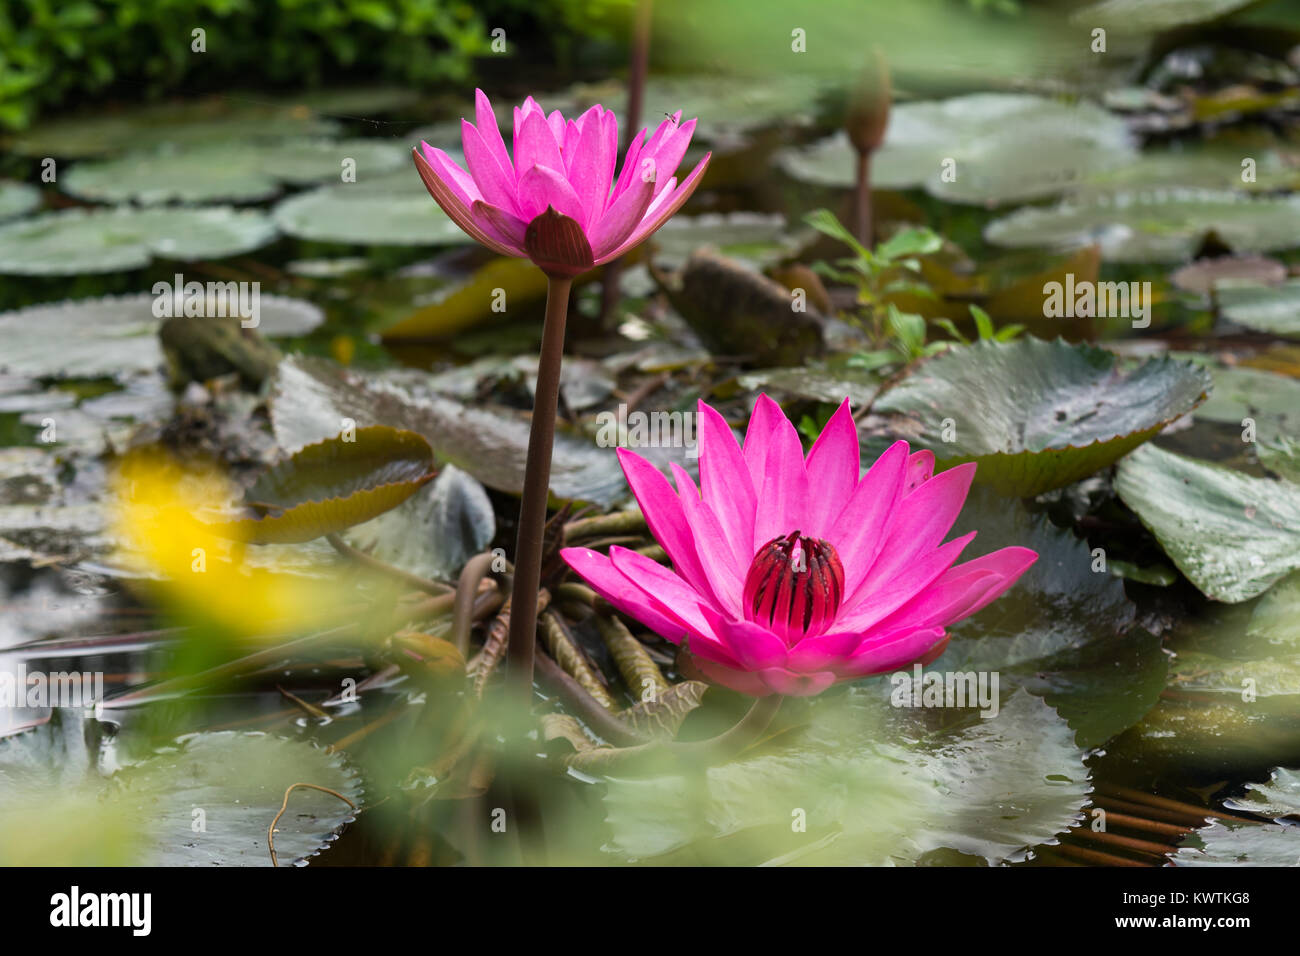 Two Lotus Flowers On Water With Leaves In Garden Park Pond Stock